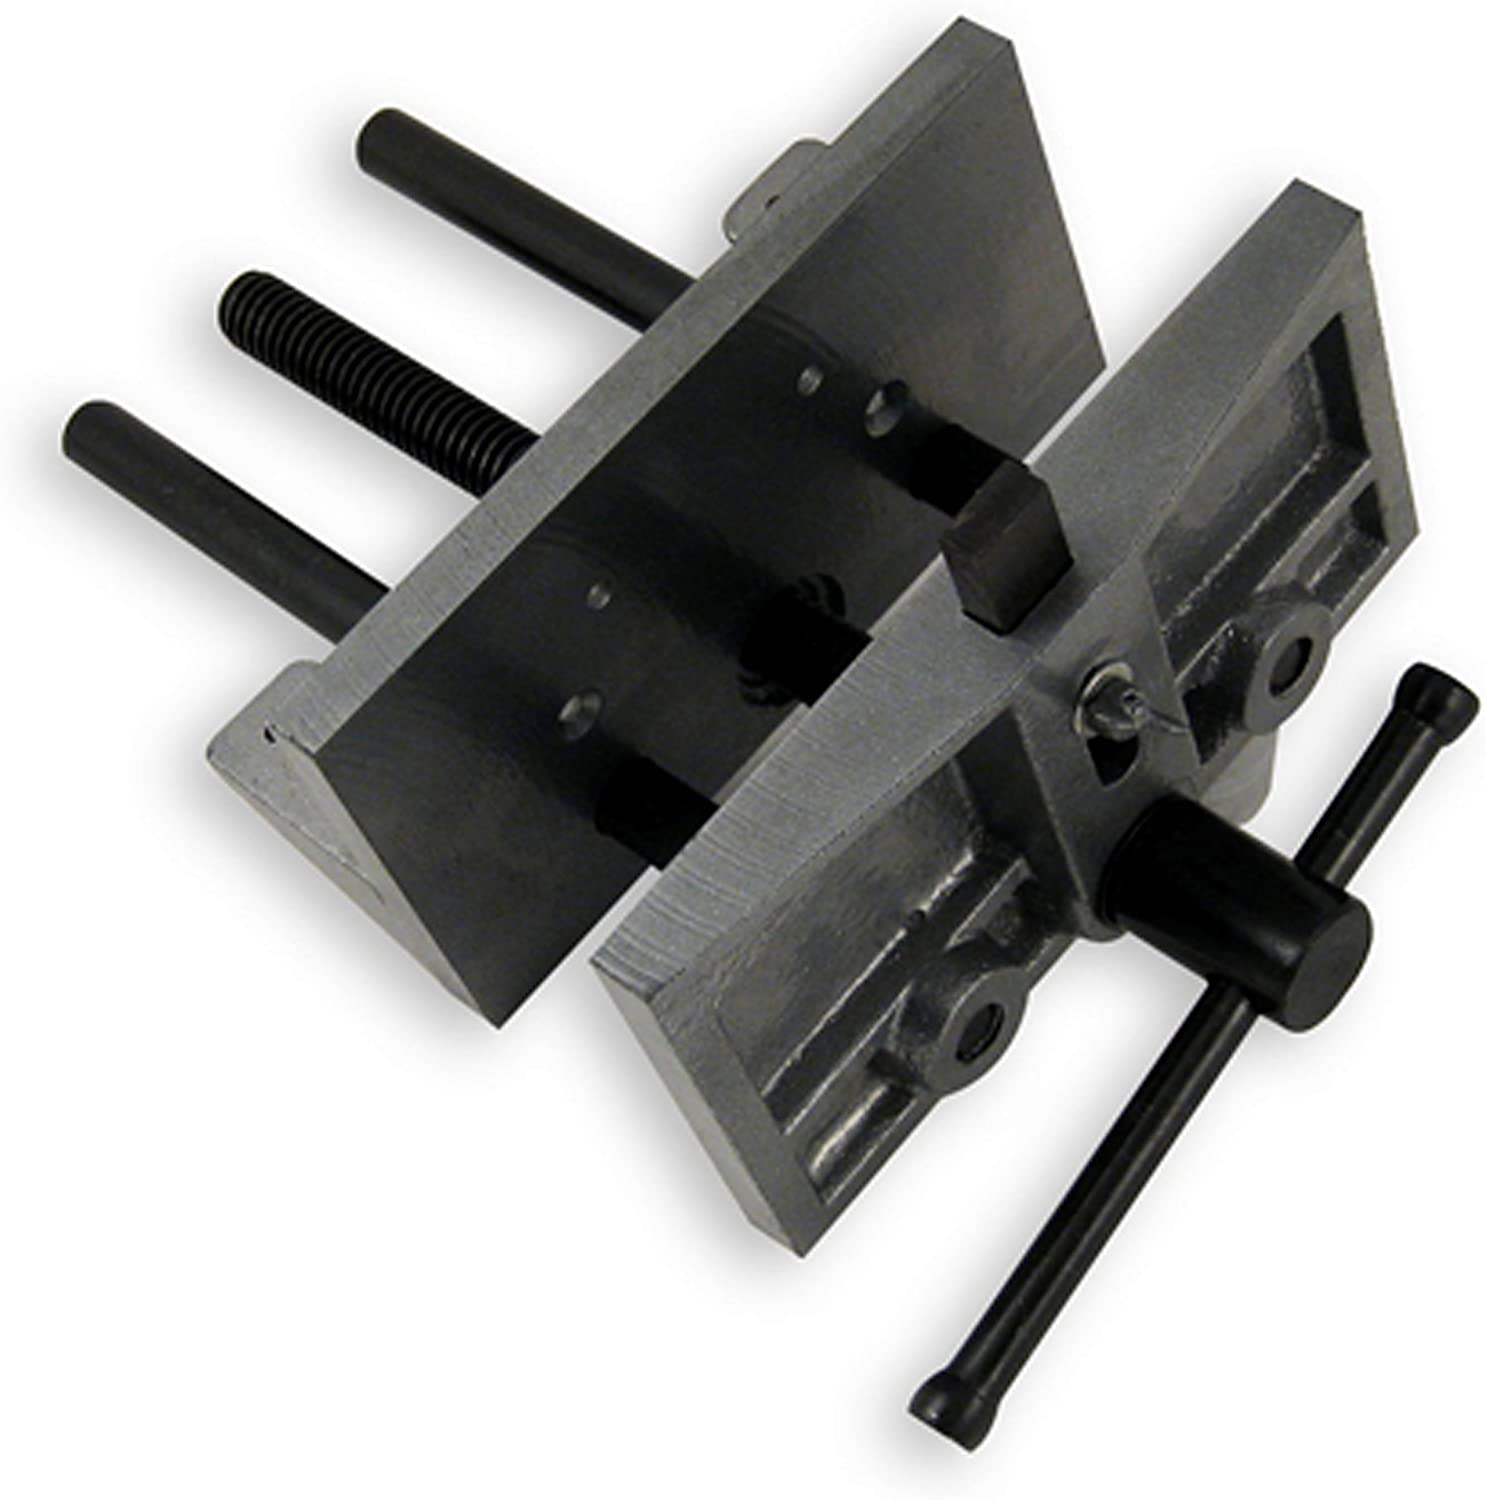 Workbench Vise Clamp Tool Woodworking Vise Grip Bench Dog Holding Wood Carpentry